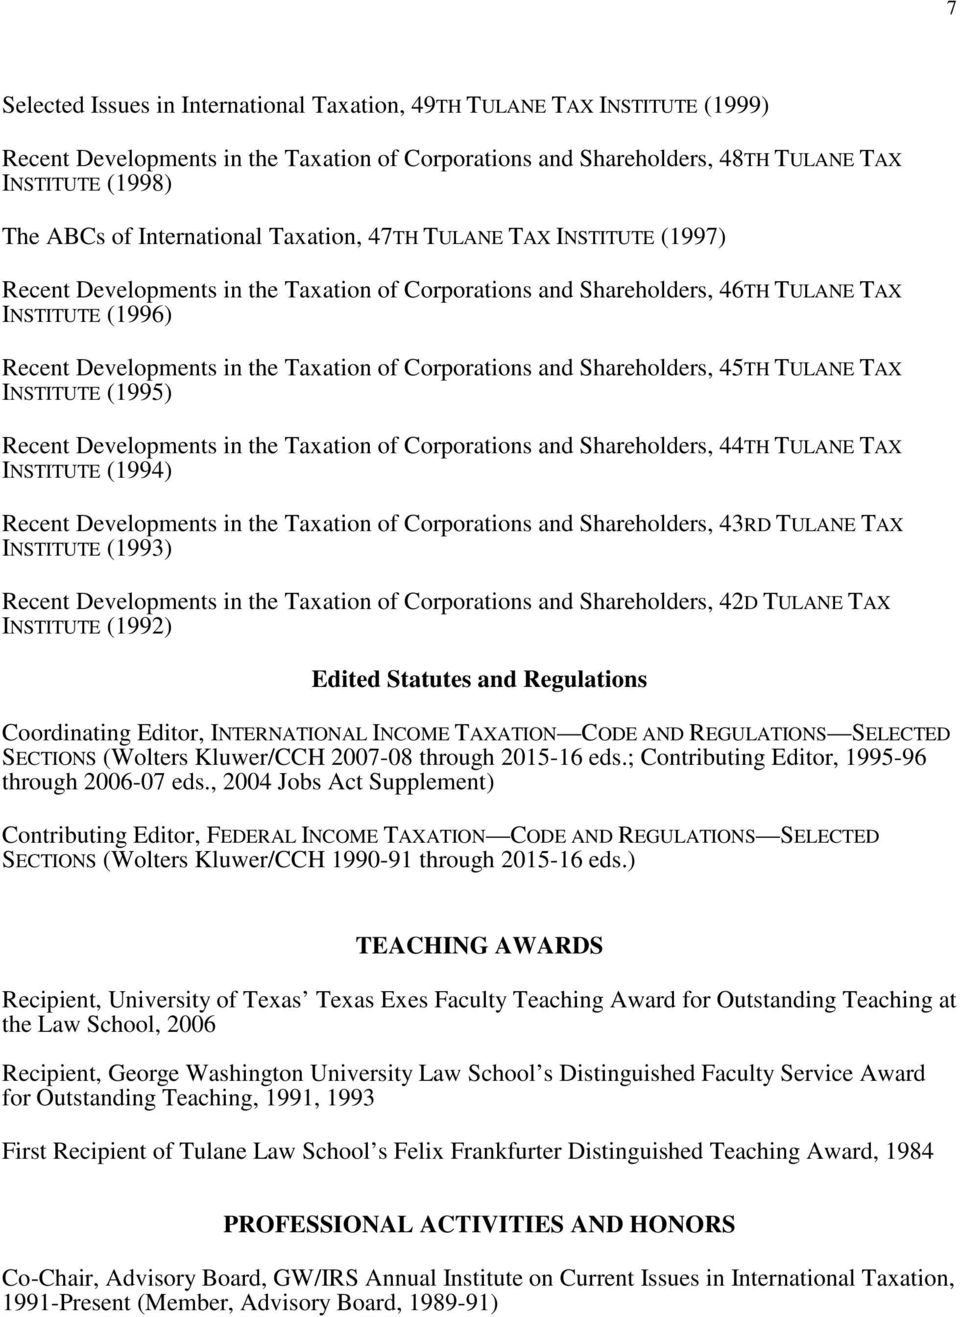 Corporations and Shareholders, 45TH TULANE TAX INSTITUTE (1995) Recent Developments in the Taxation of Corporations and Shareholders, 44TH TULANE TAX INSTITUTE (1994) Recent Developments in the